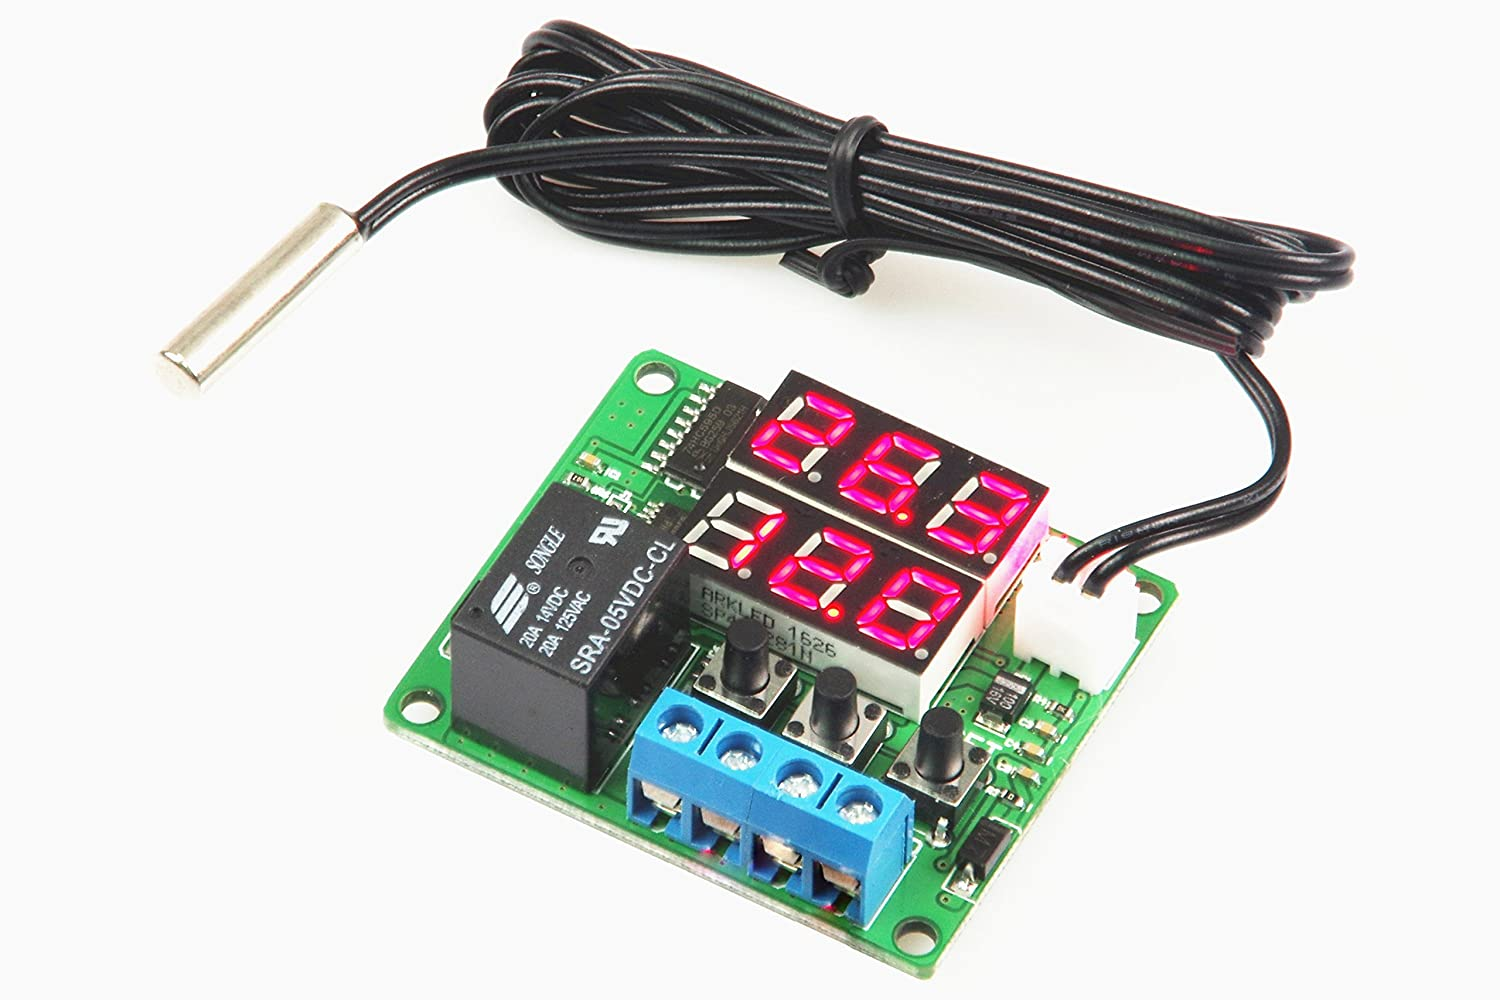 LM YN Digital Thermostat Module DC 5V 100℃ Temperature Controller Board Electronic Temperature Control Module Switch Waterproof Sensor Probe Dual LED Display Red+Red 20℃ to